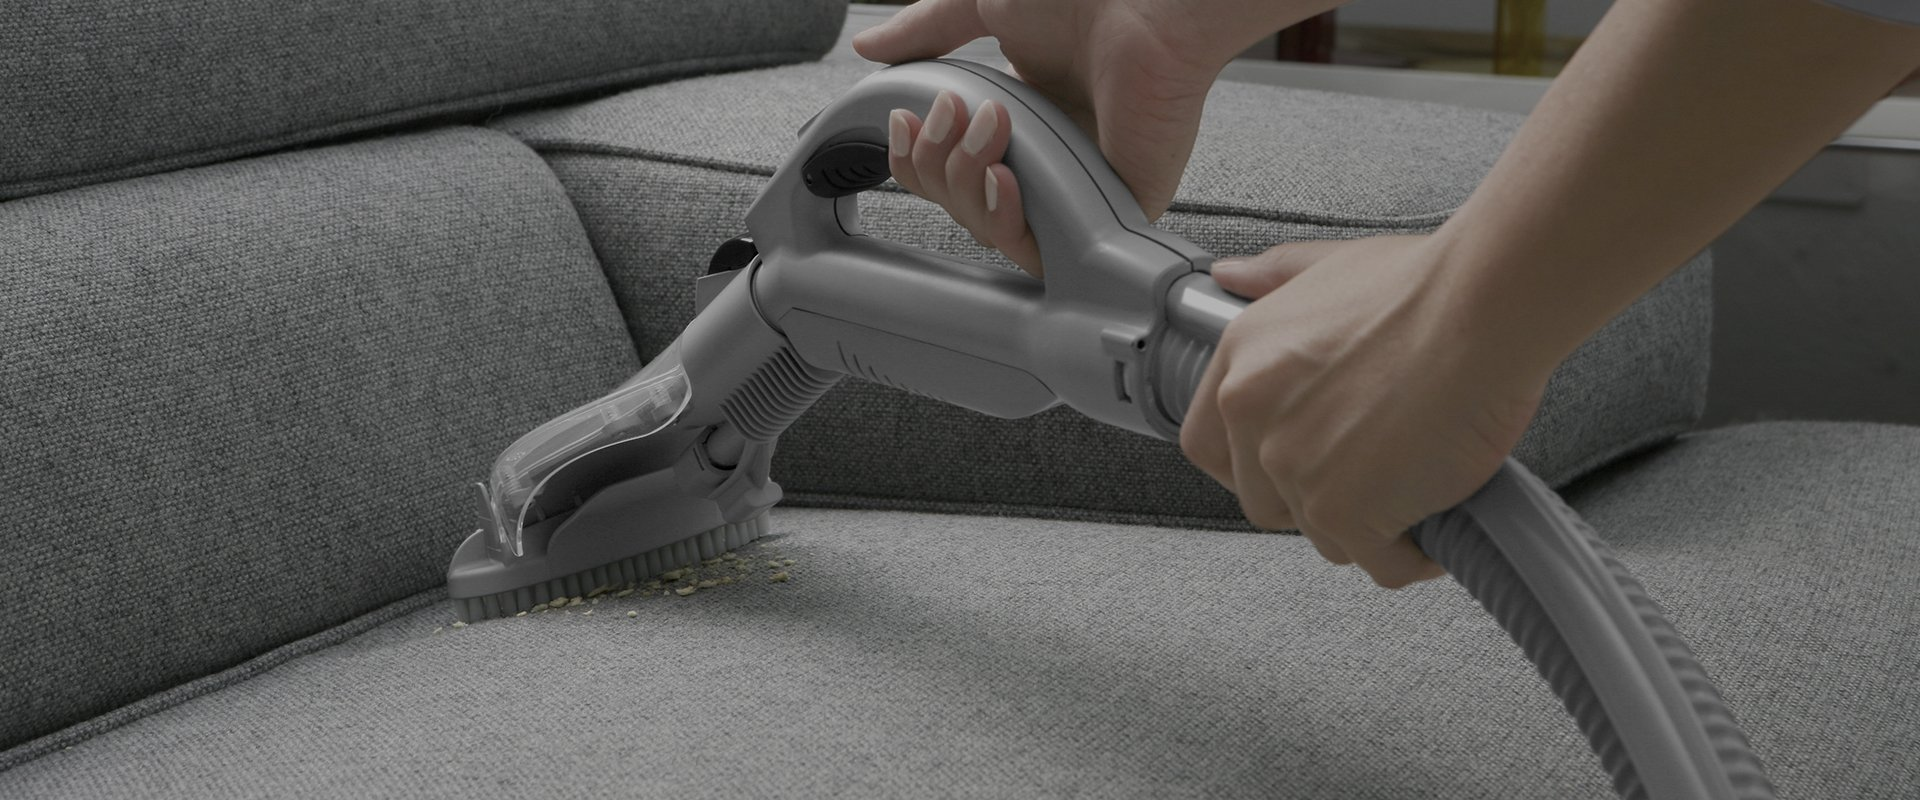 House Cleaning Services, Maid Service and Cleaning Services